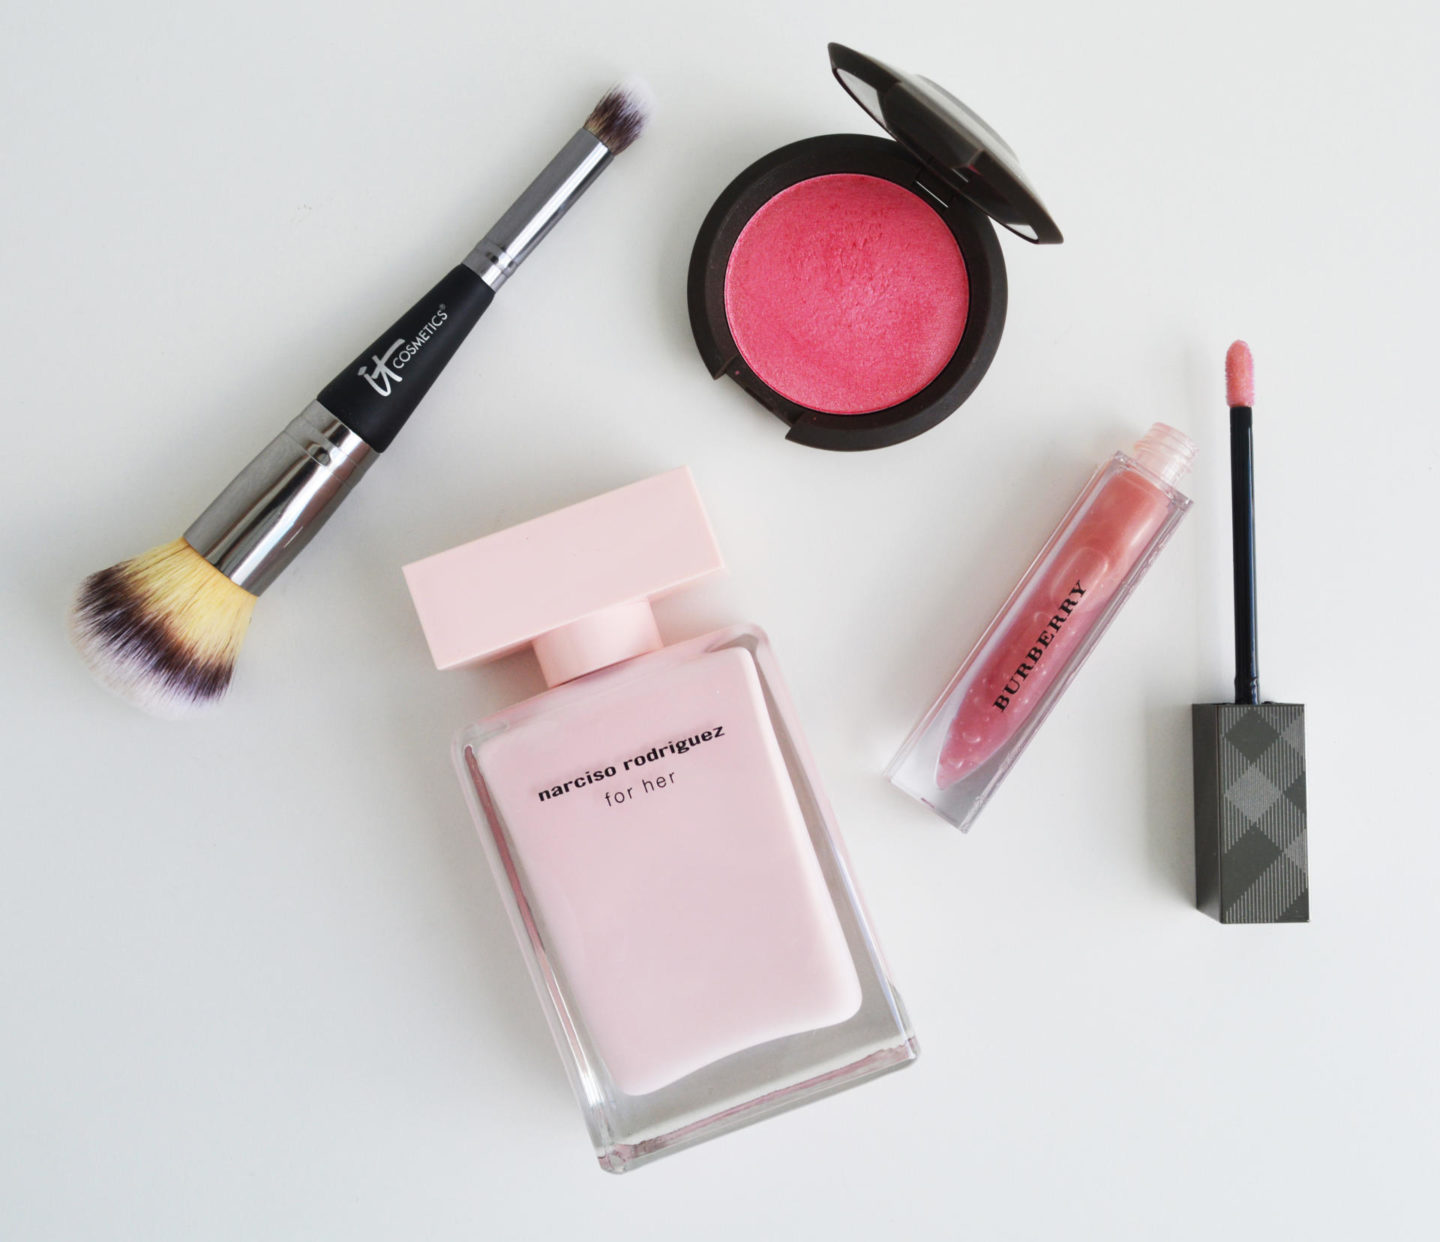 Narciso Rodriguez for her, Becca Camelia Blush, T Cosmetics Heavenly Luxe Complexion Perfection Brush #7